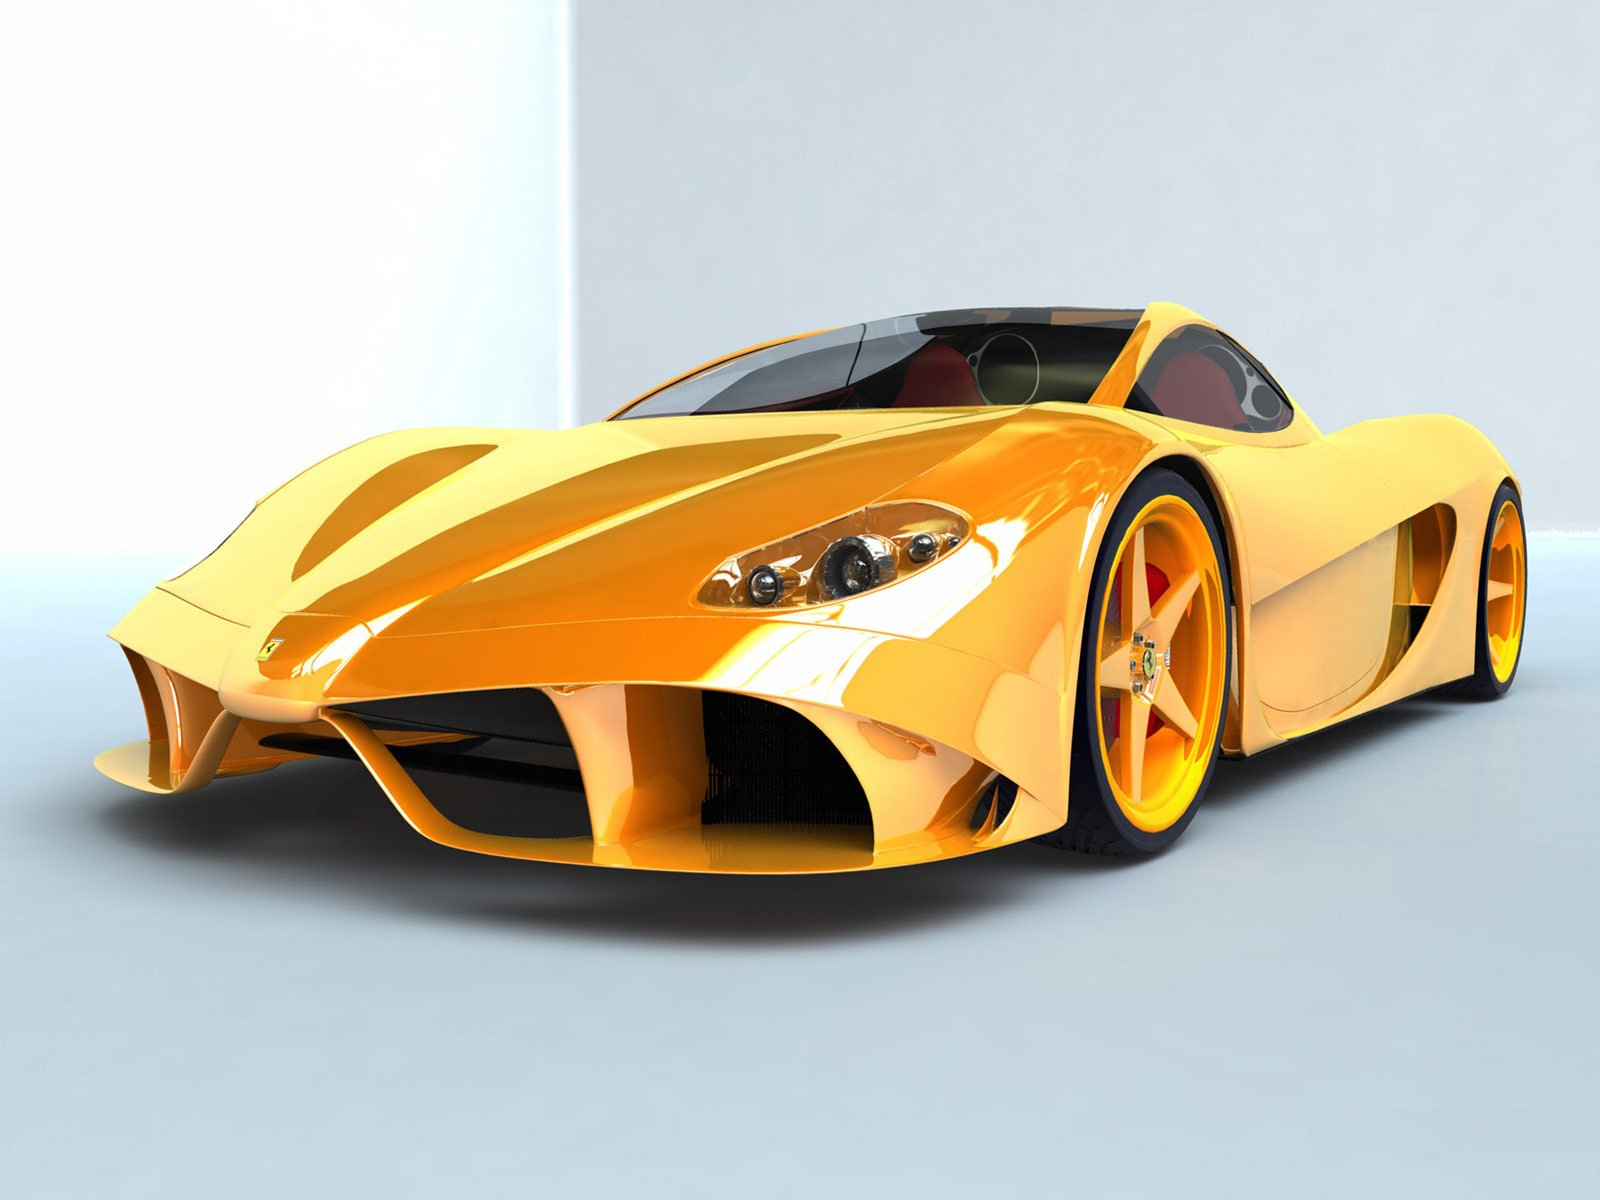 Hd Cool Car Wallpapers: New cool cars wallpapers